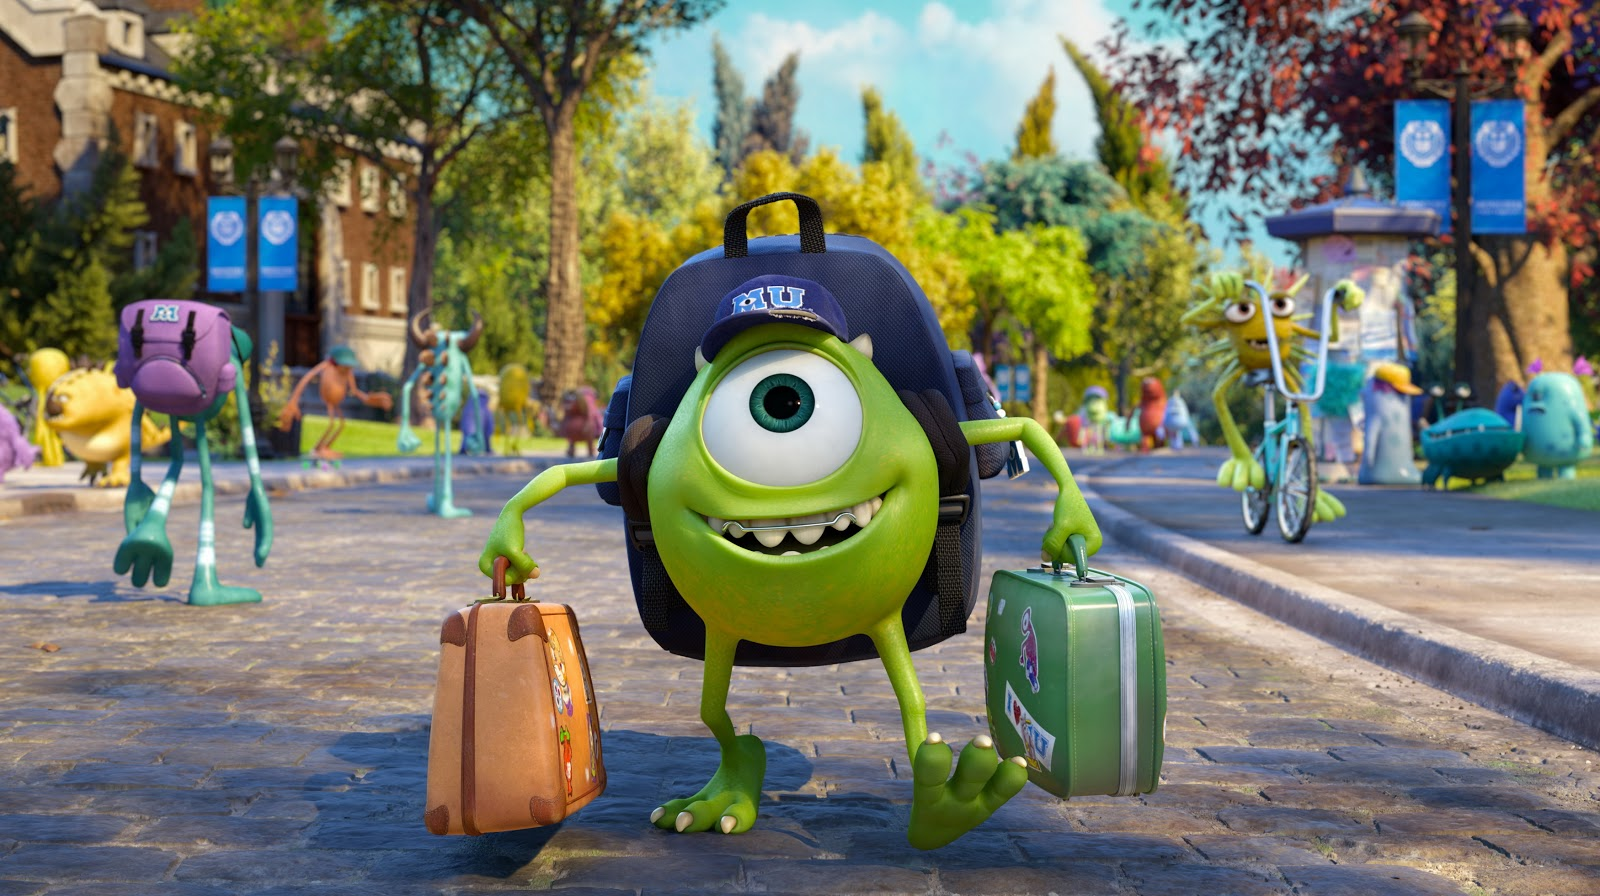 Monsters University A Family Favorite That Will Make You Laugh Enter To Win Monsters U Prize Pack Of Goodies Giveaway Whispered Inspirations